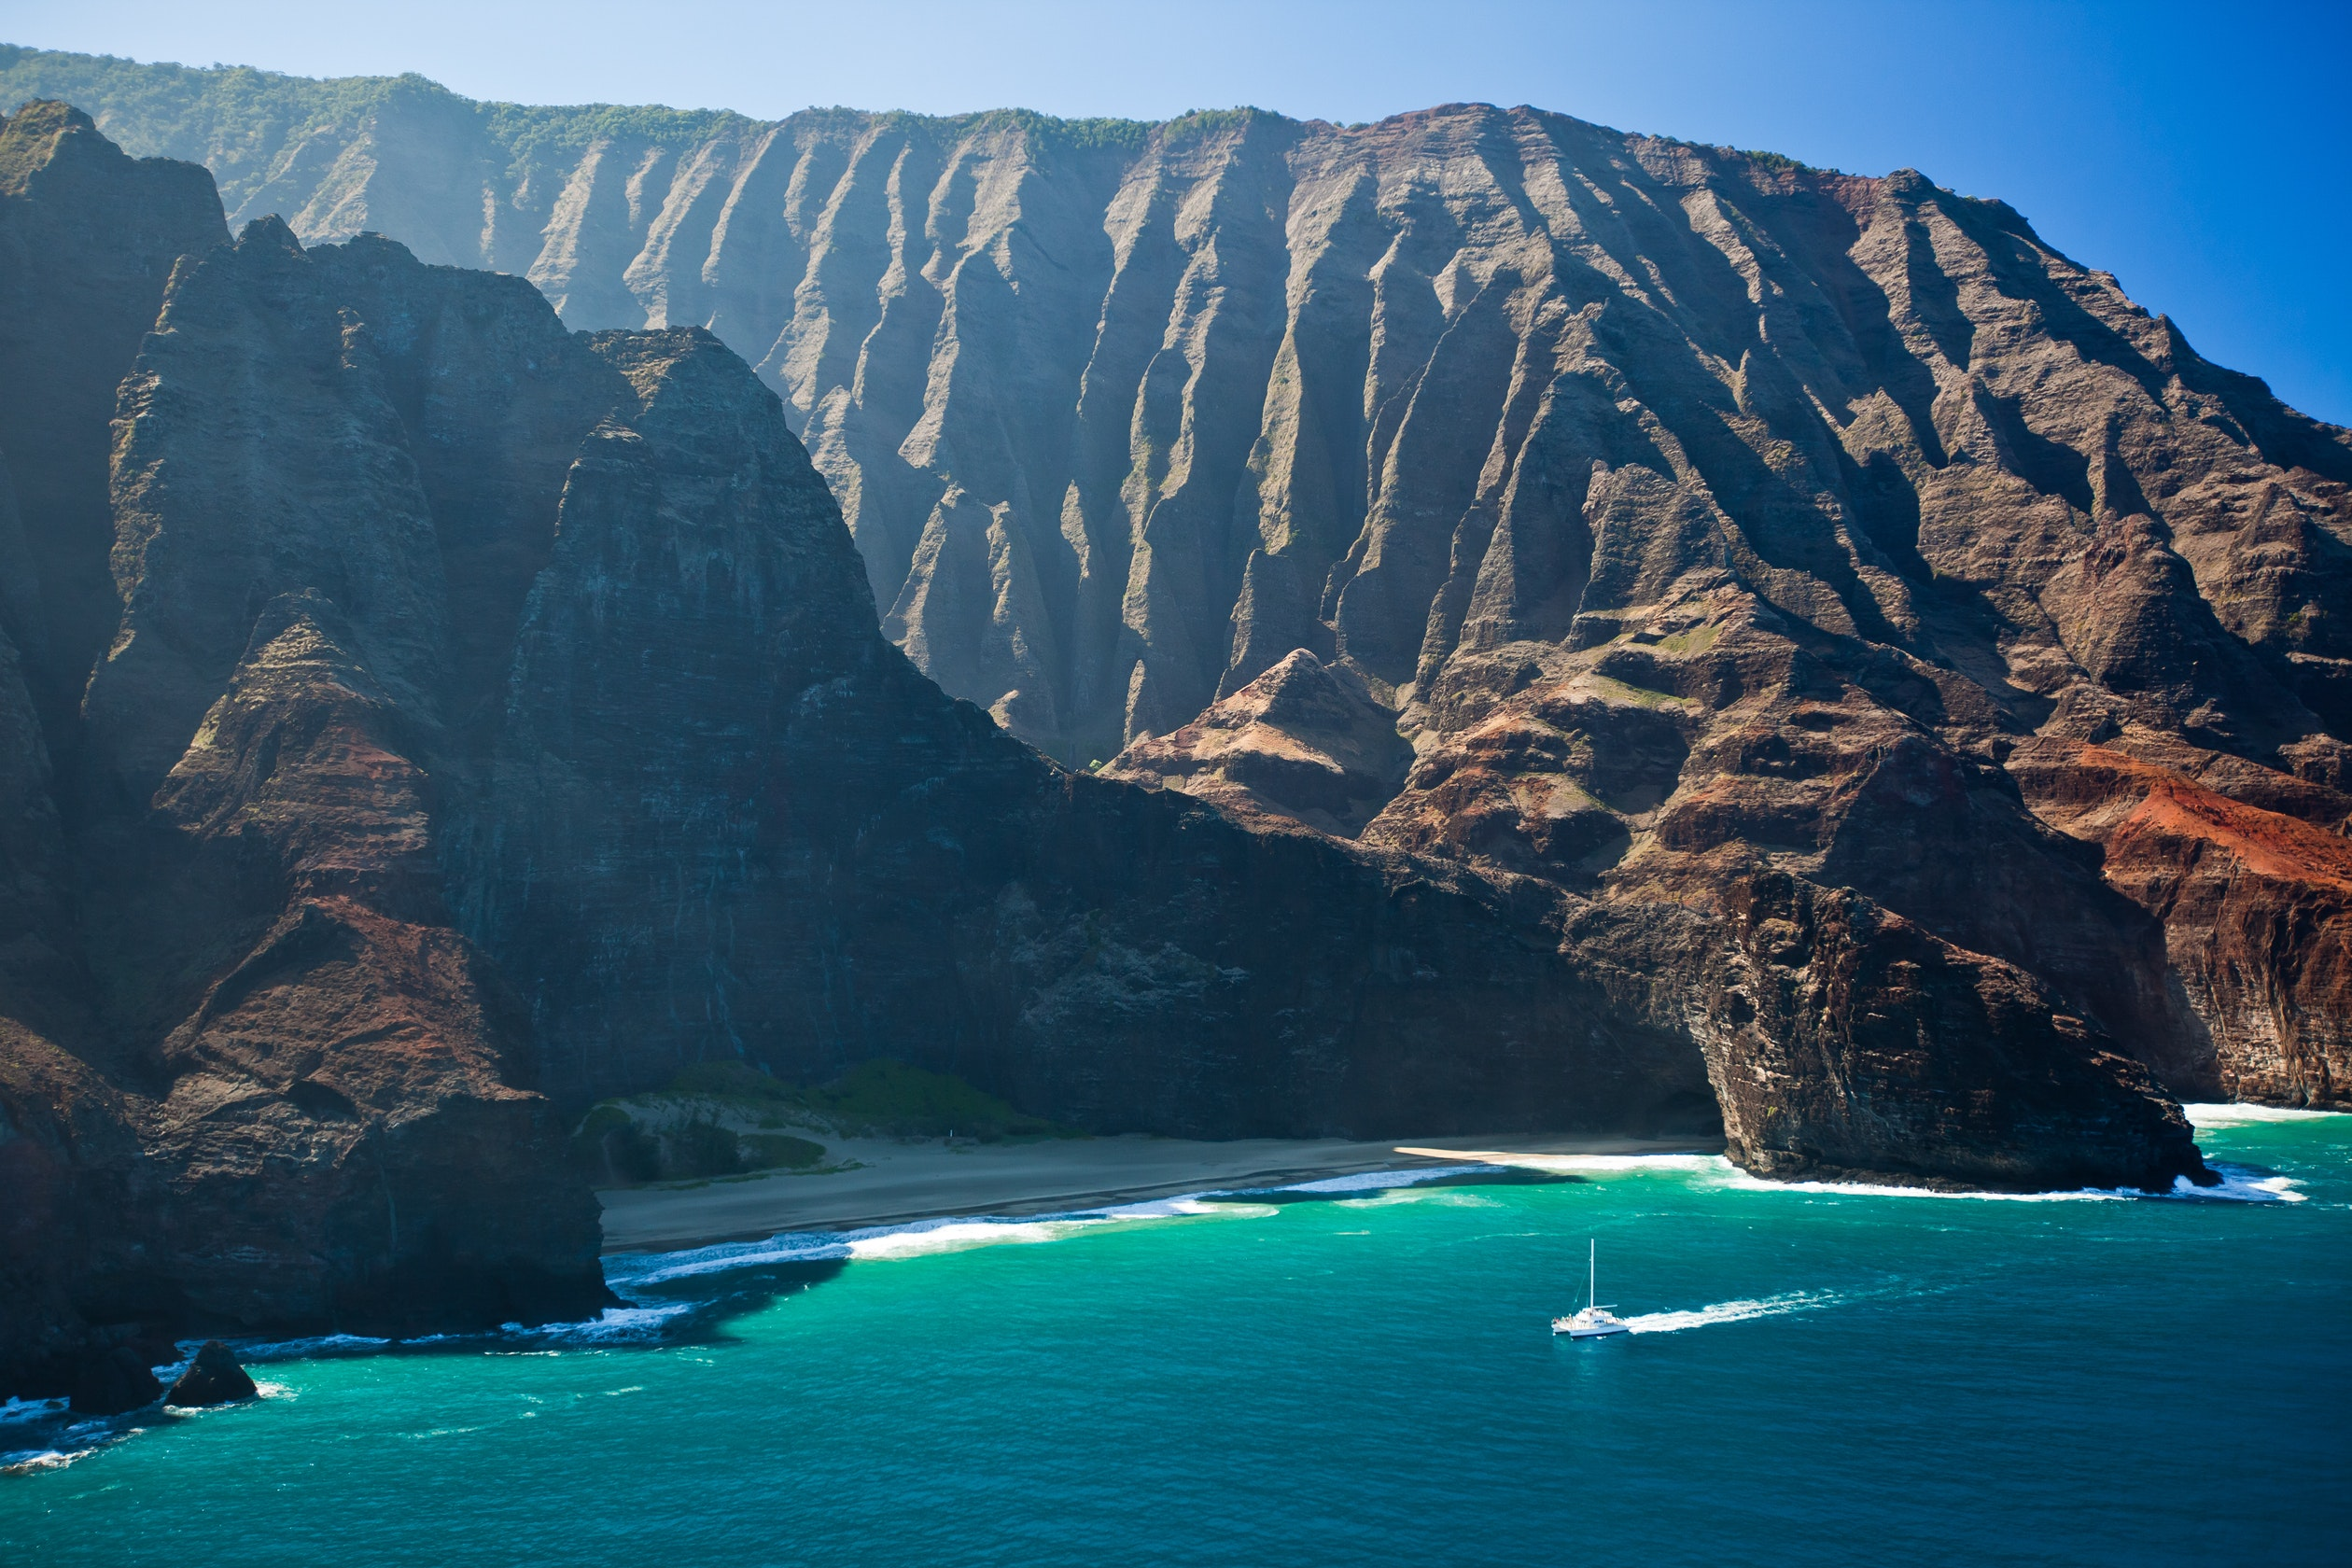 The cliffs and lush trails of Kauai's Napali Coast are steep and spectacular.